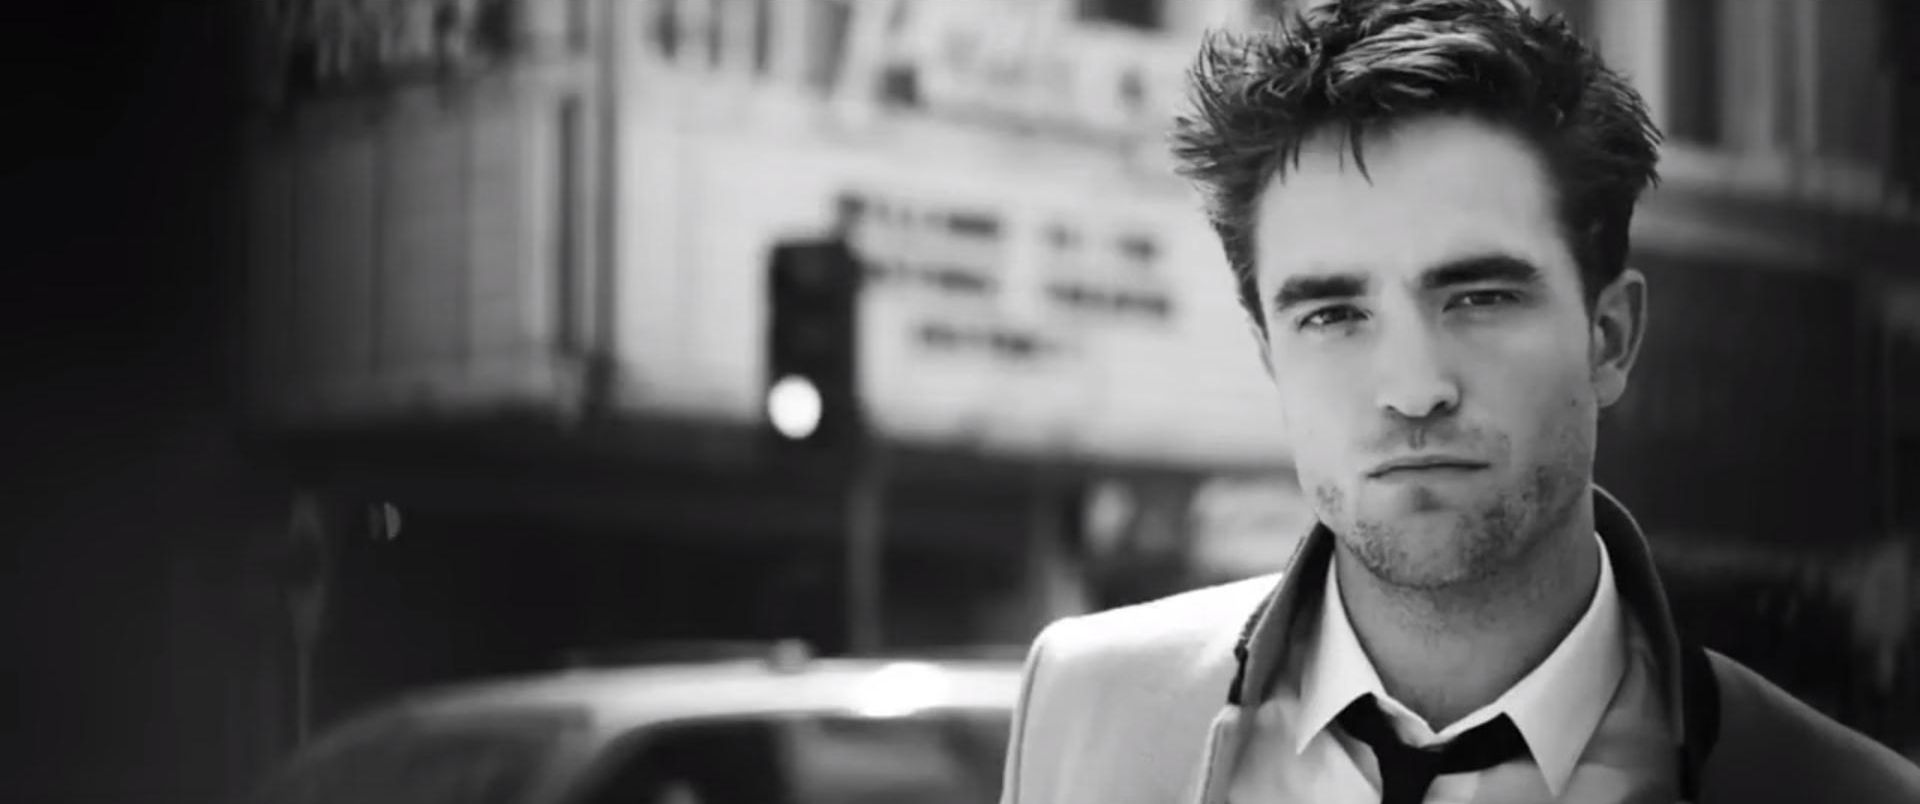 VIDEO: NOVA SURADNJA Robert Pattinson novo lice Diorove kampanje